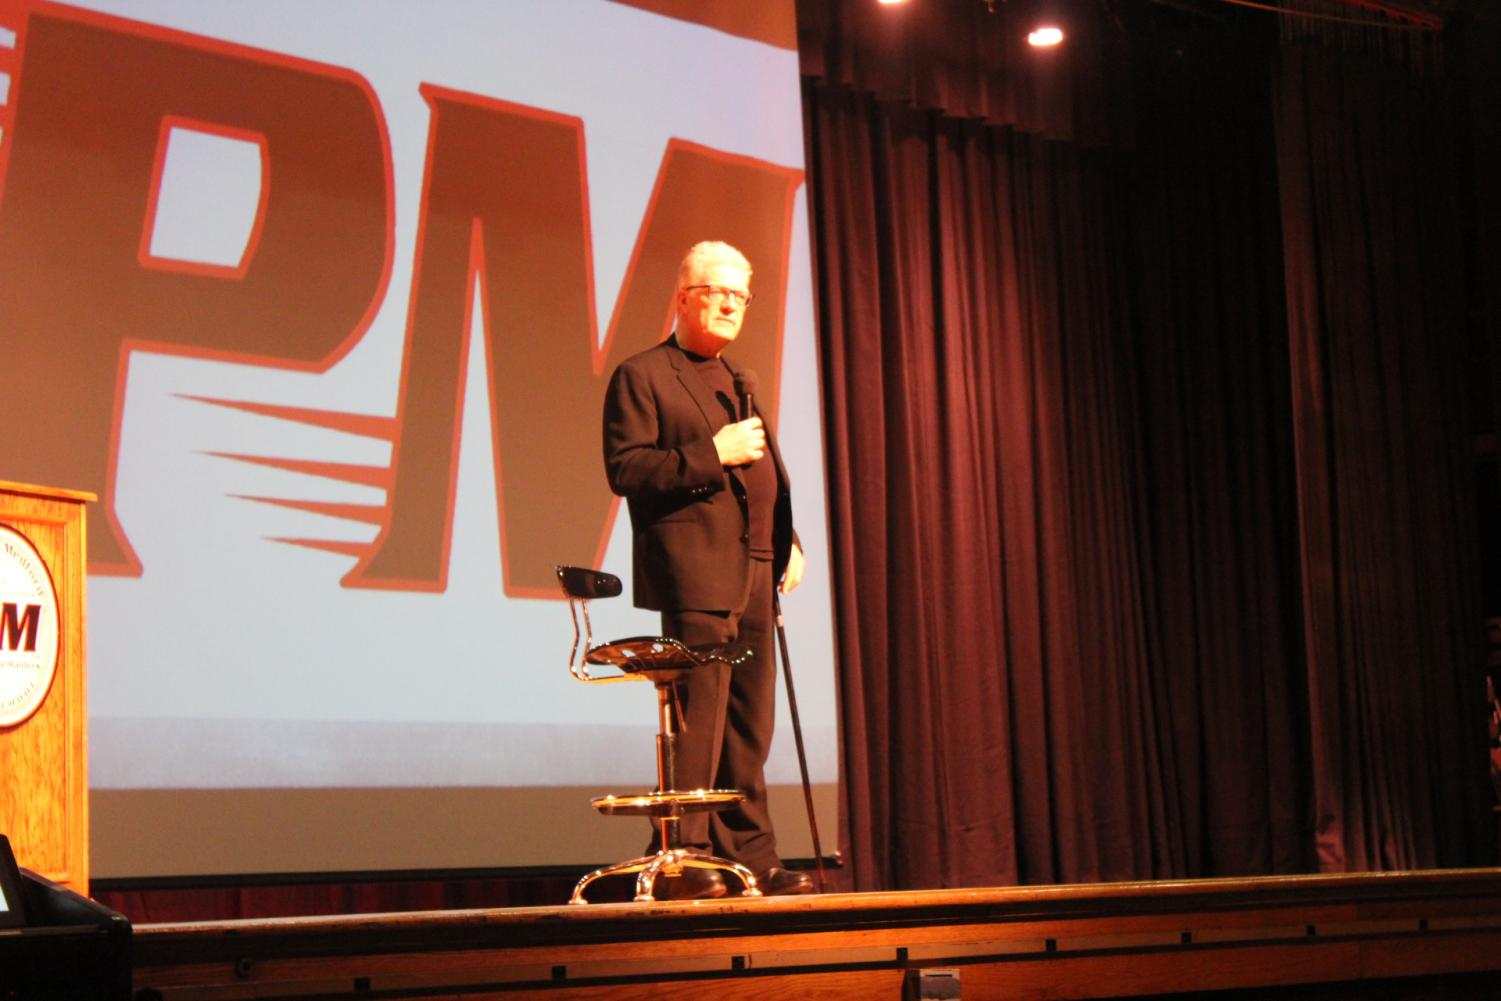 Sir Ken Robinson weathered the storm to speak with the Patchogue Medford community